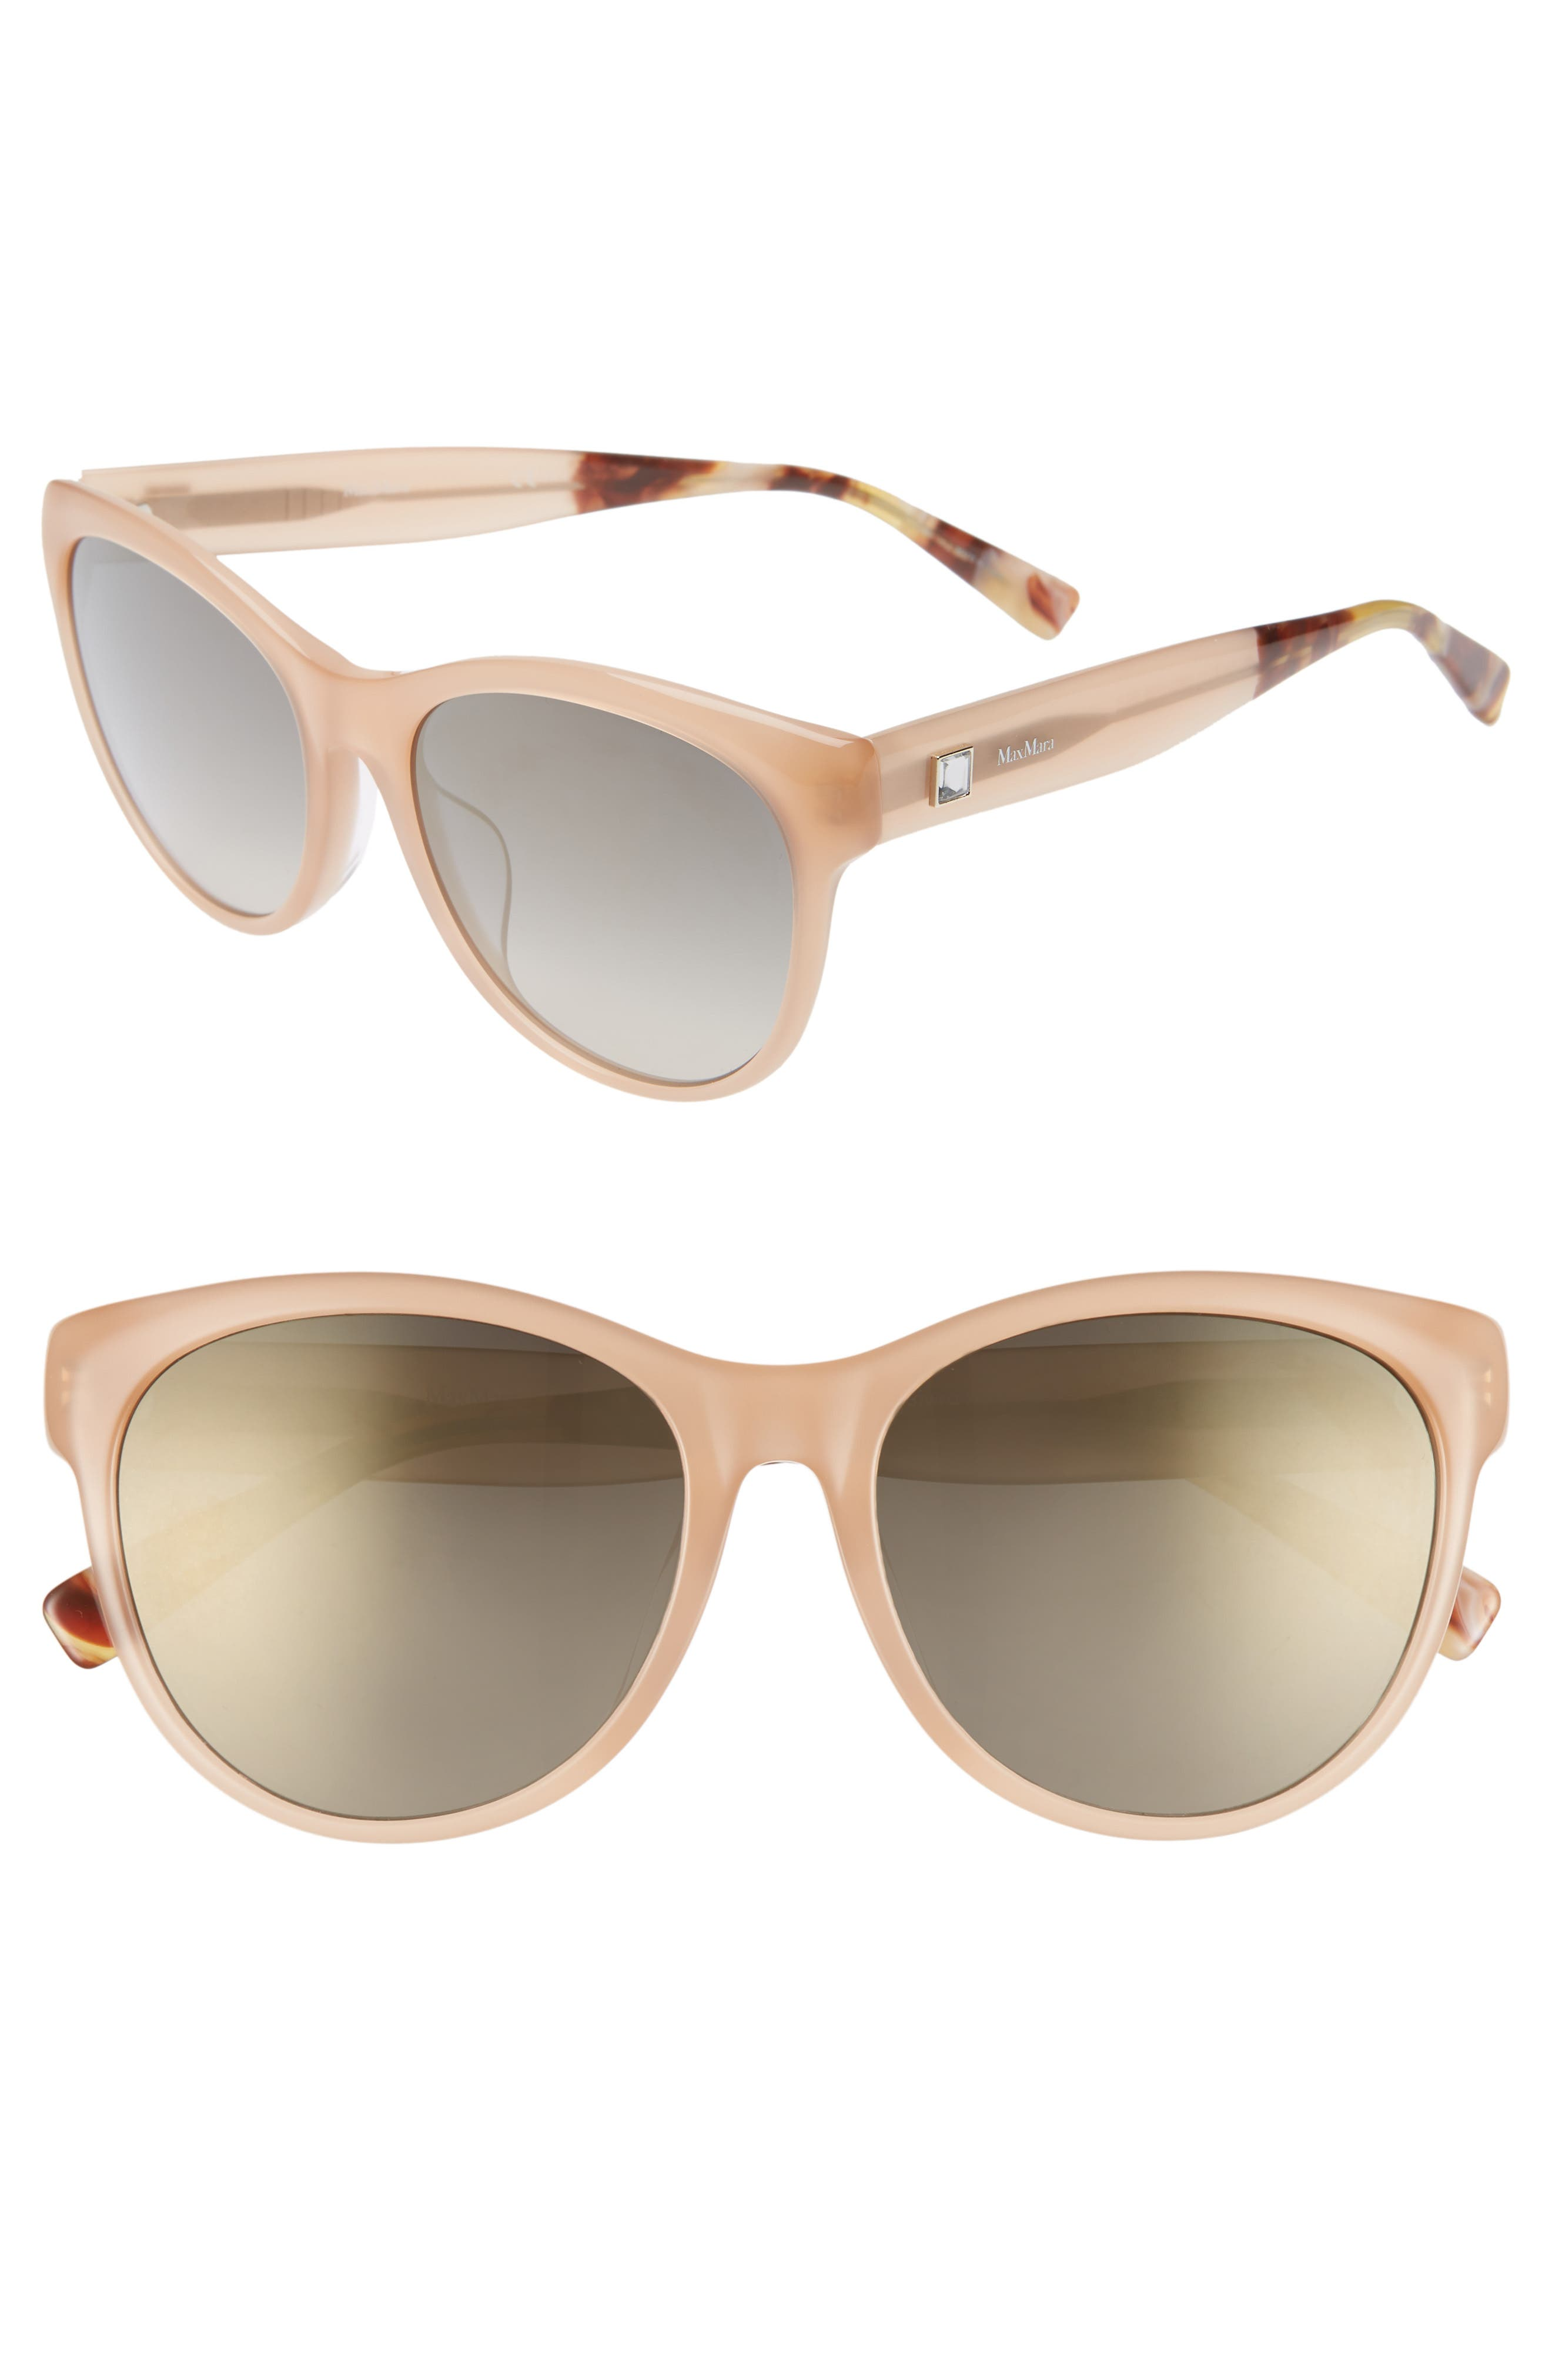 Leisure 57mm Special Fit Sunglasses,                         Main,                         color, 250